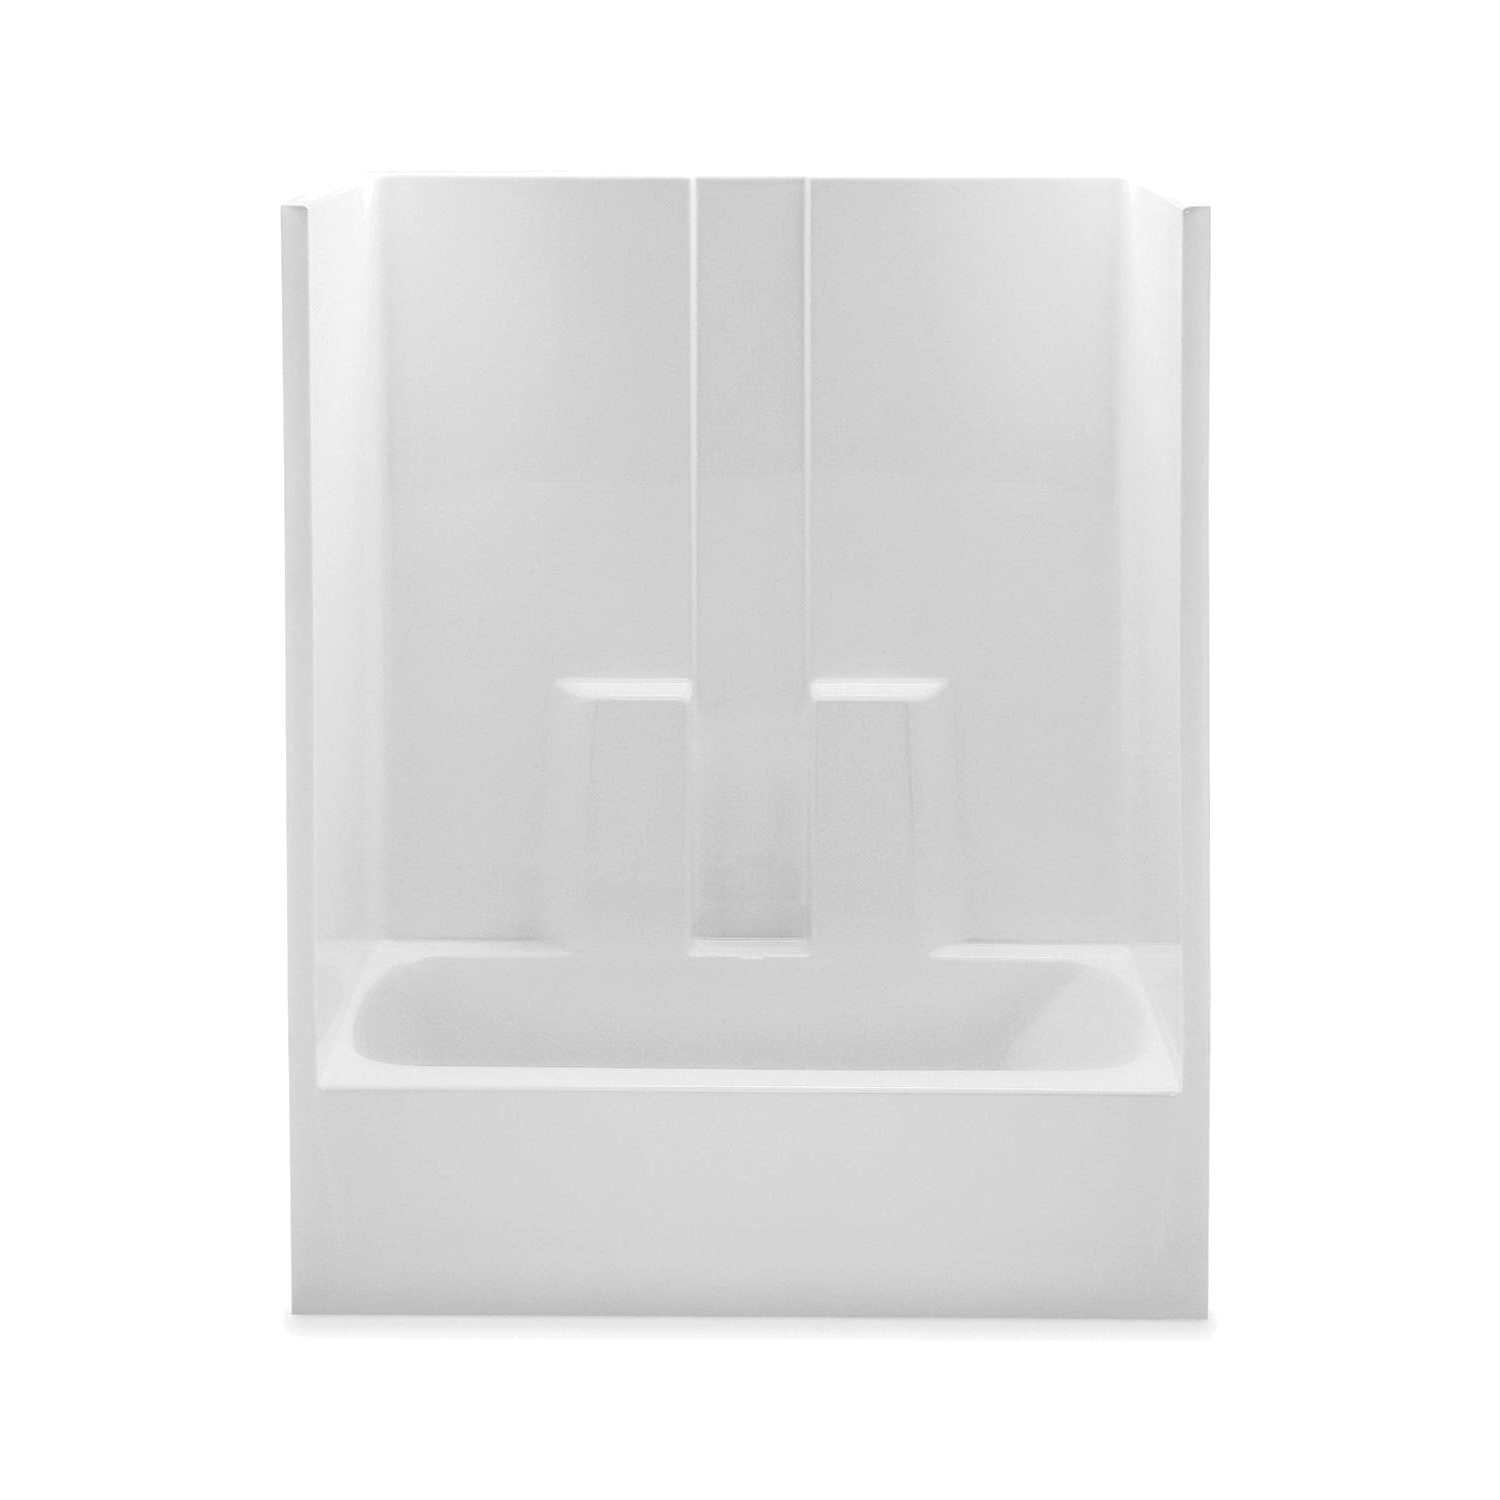 Aquatic 2603SGTR-WH 1-Piece Tub and Shower, Everyday, 60 in W x 79-1/2 in H, Acrylic, White, Domestic